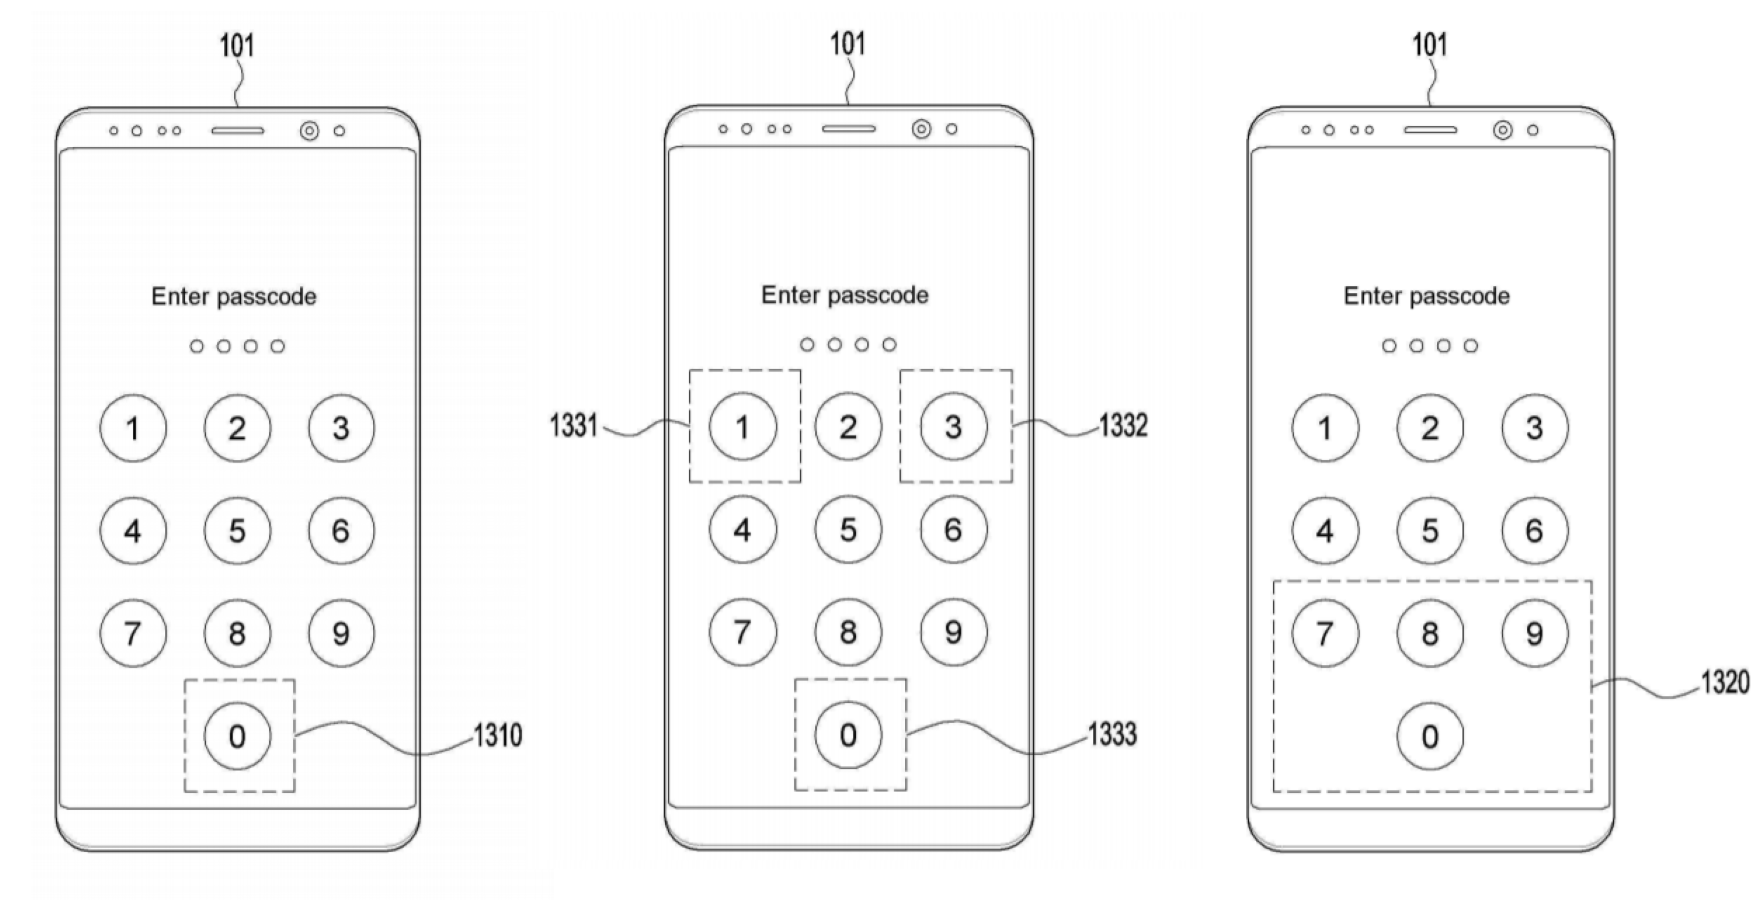 Samsung's phones will check your fingerprint during entering PIN